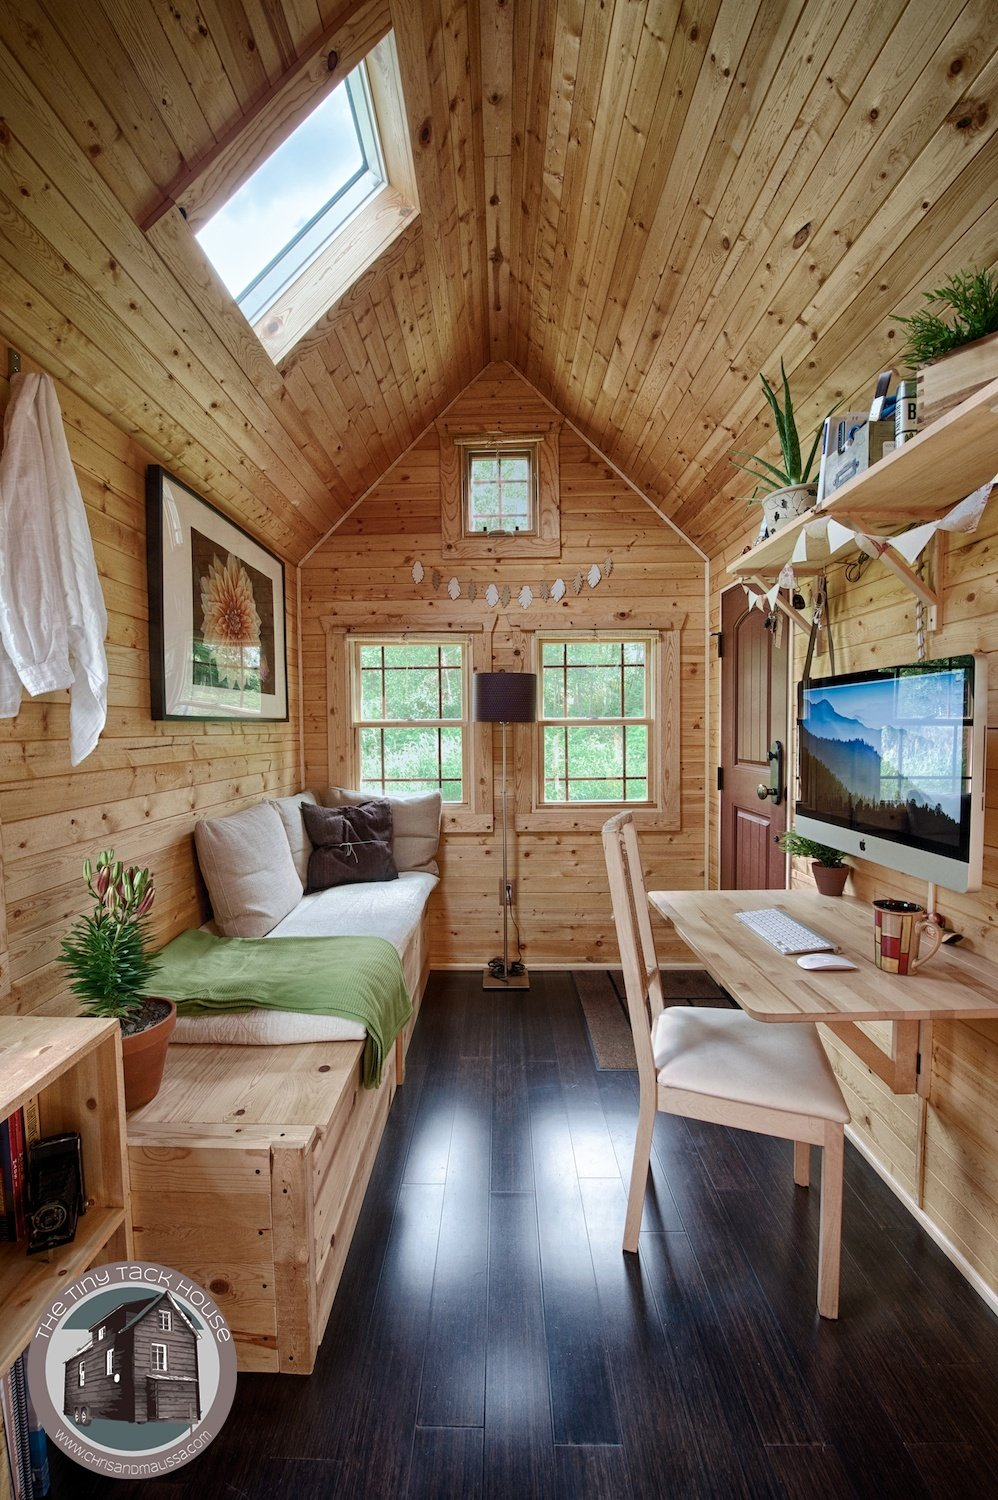 Image Via Tiny Tack House · The Tiny Tack House